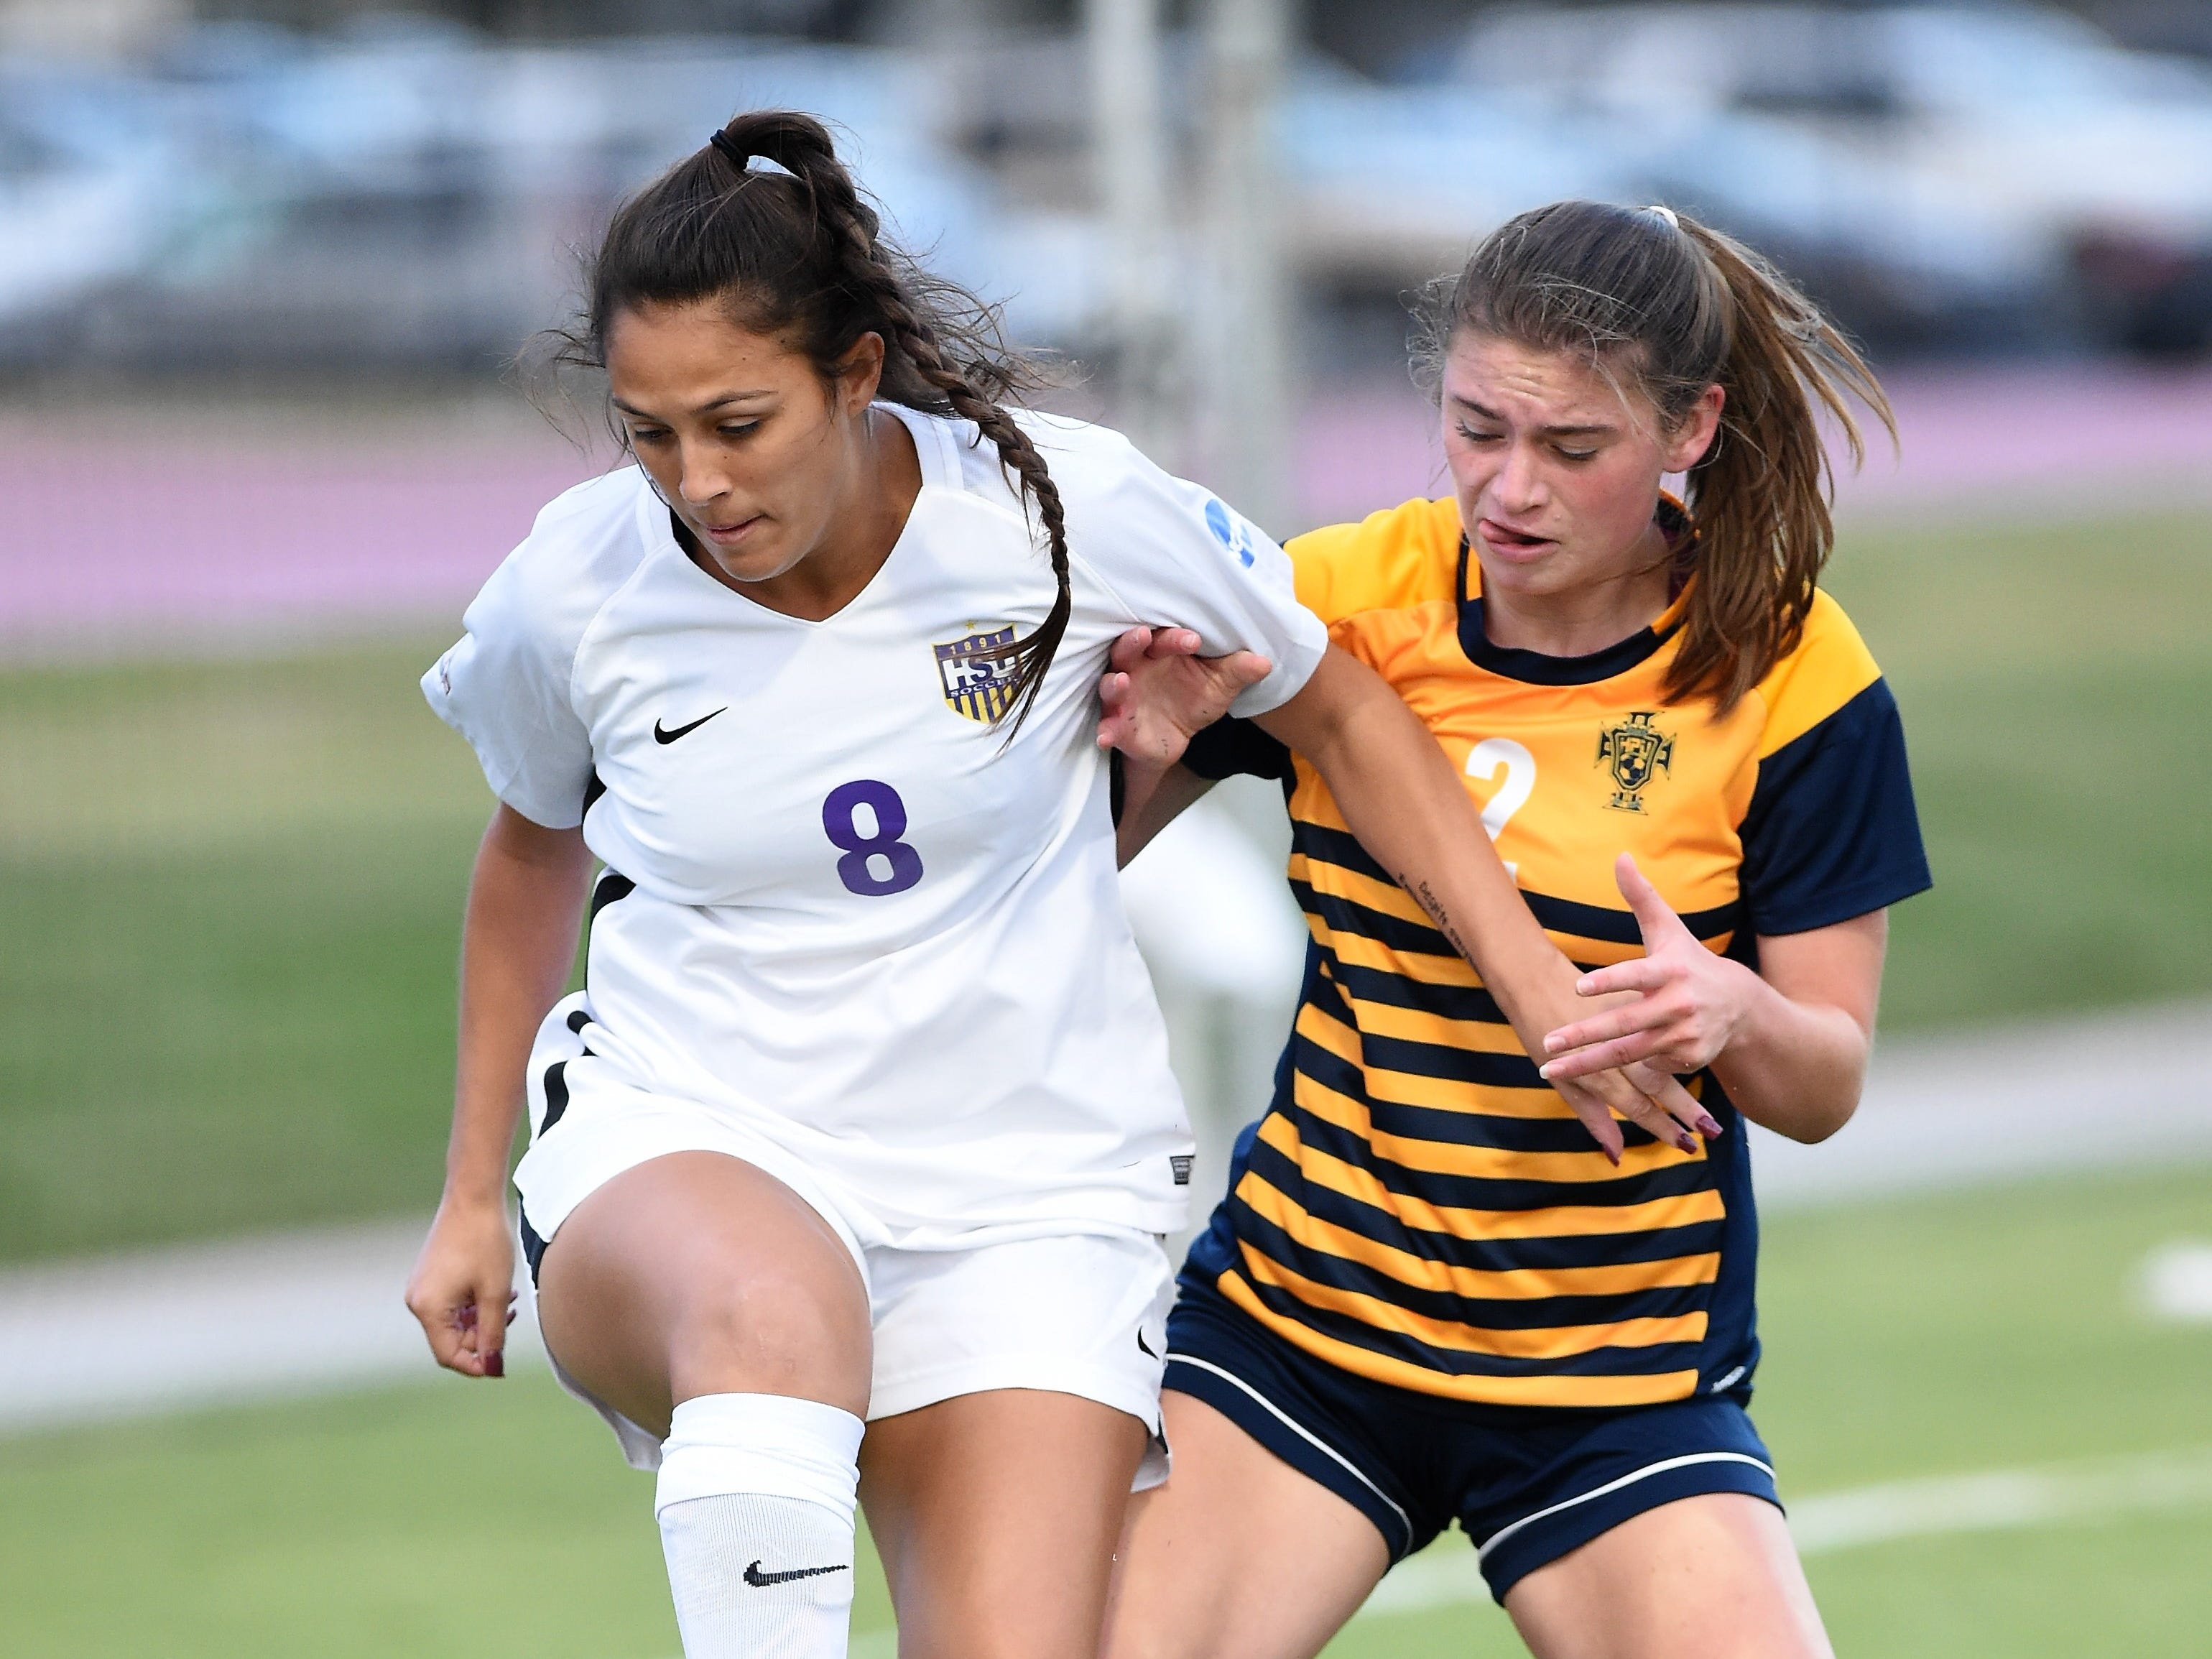 Hardin-Simmons forward Taylor Bernal (8) blocks Howard Payne's Anna Leffers (2) from the ball at the HSU Soccer Complex on Thursday, Oct. 11, 2018. The Cowgirls won 4-1.